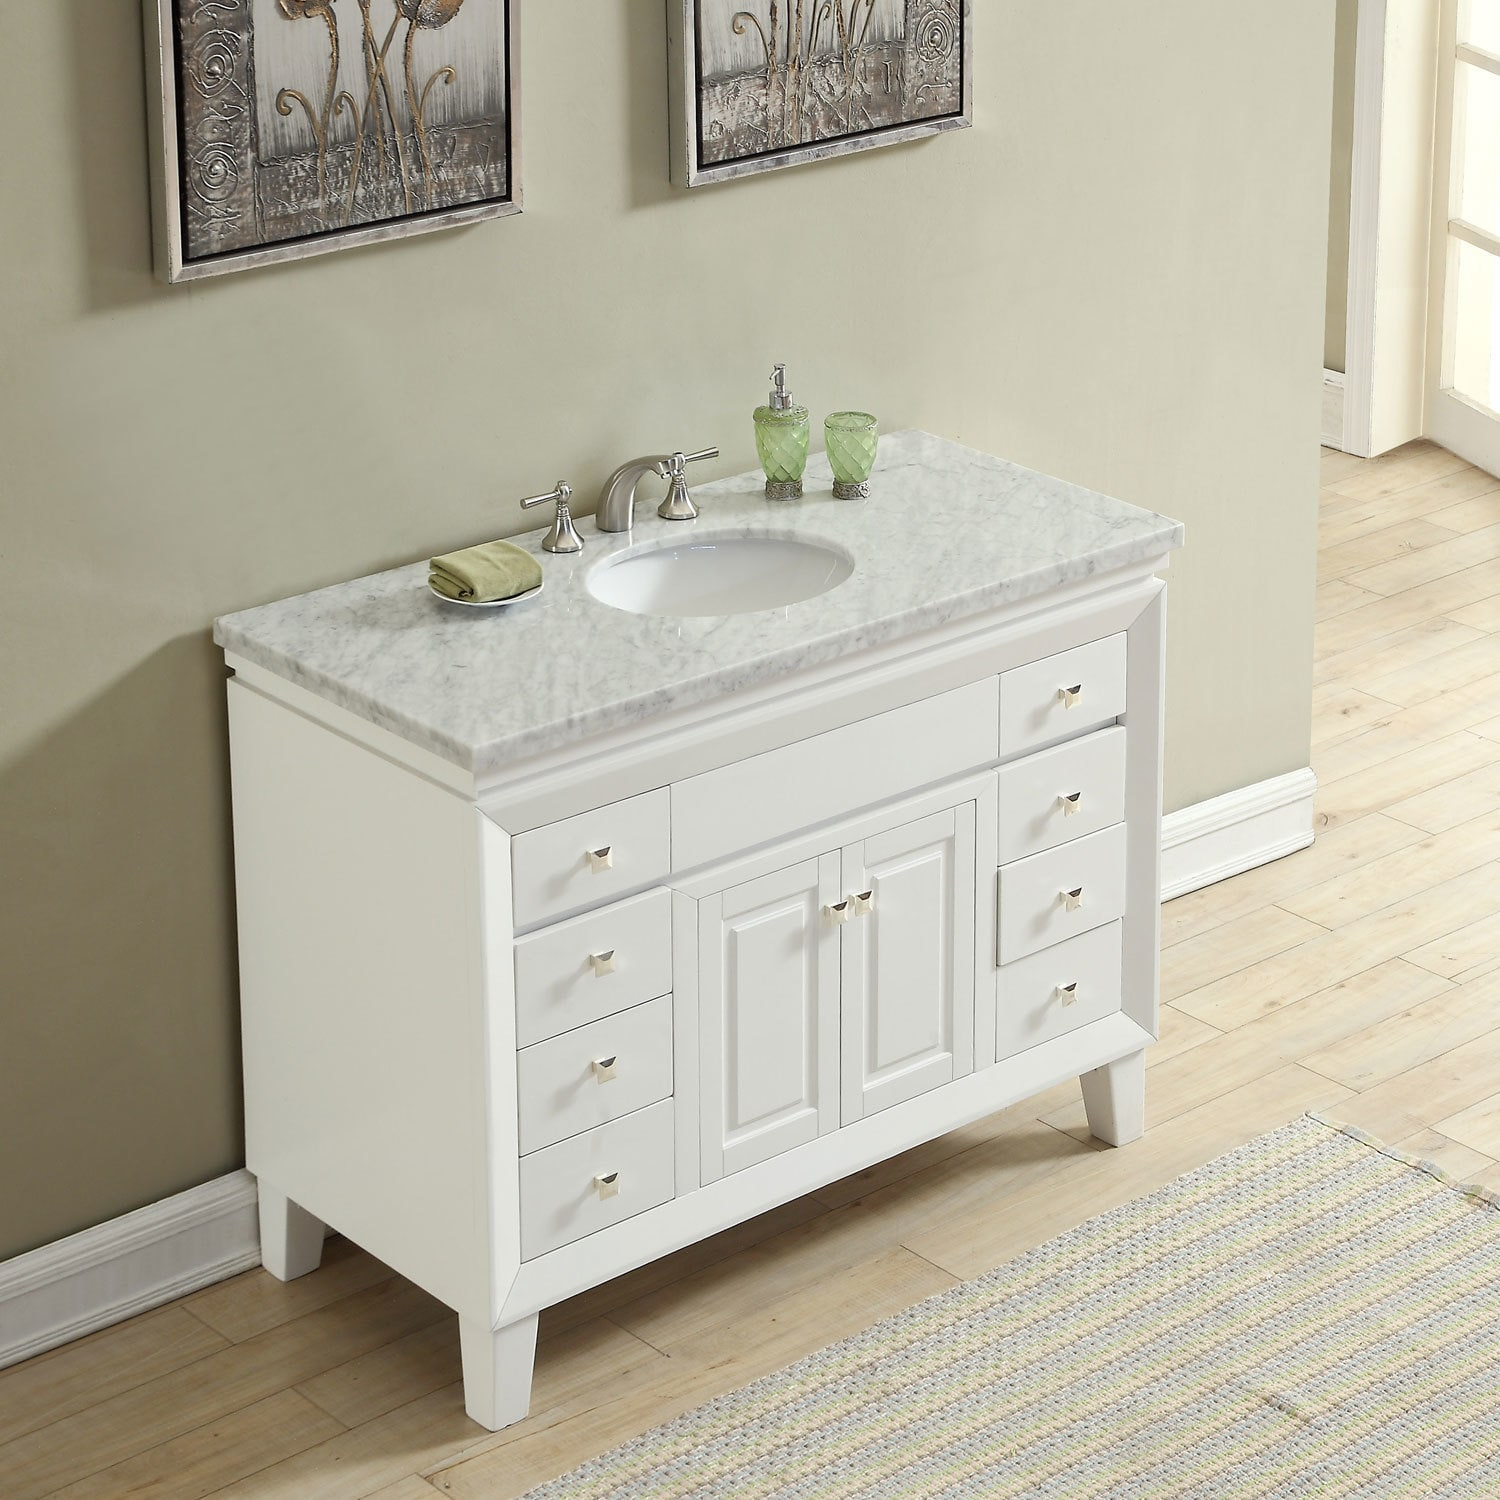 48 Transitional Bathroom Vanity